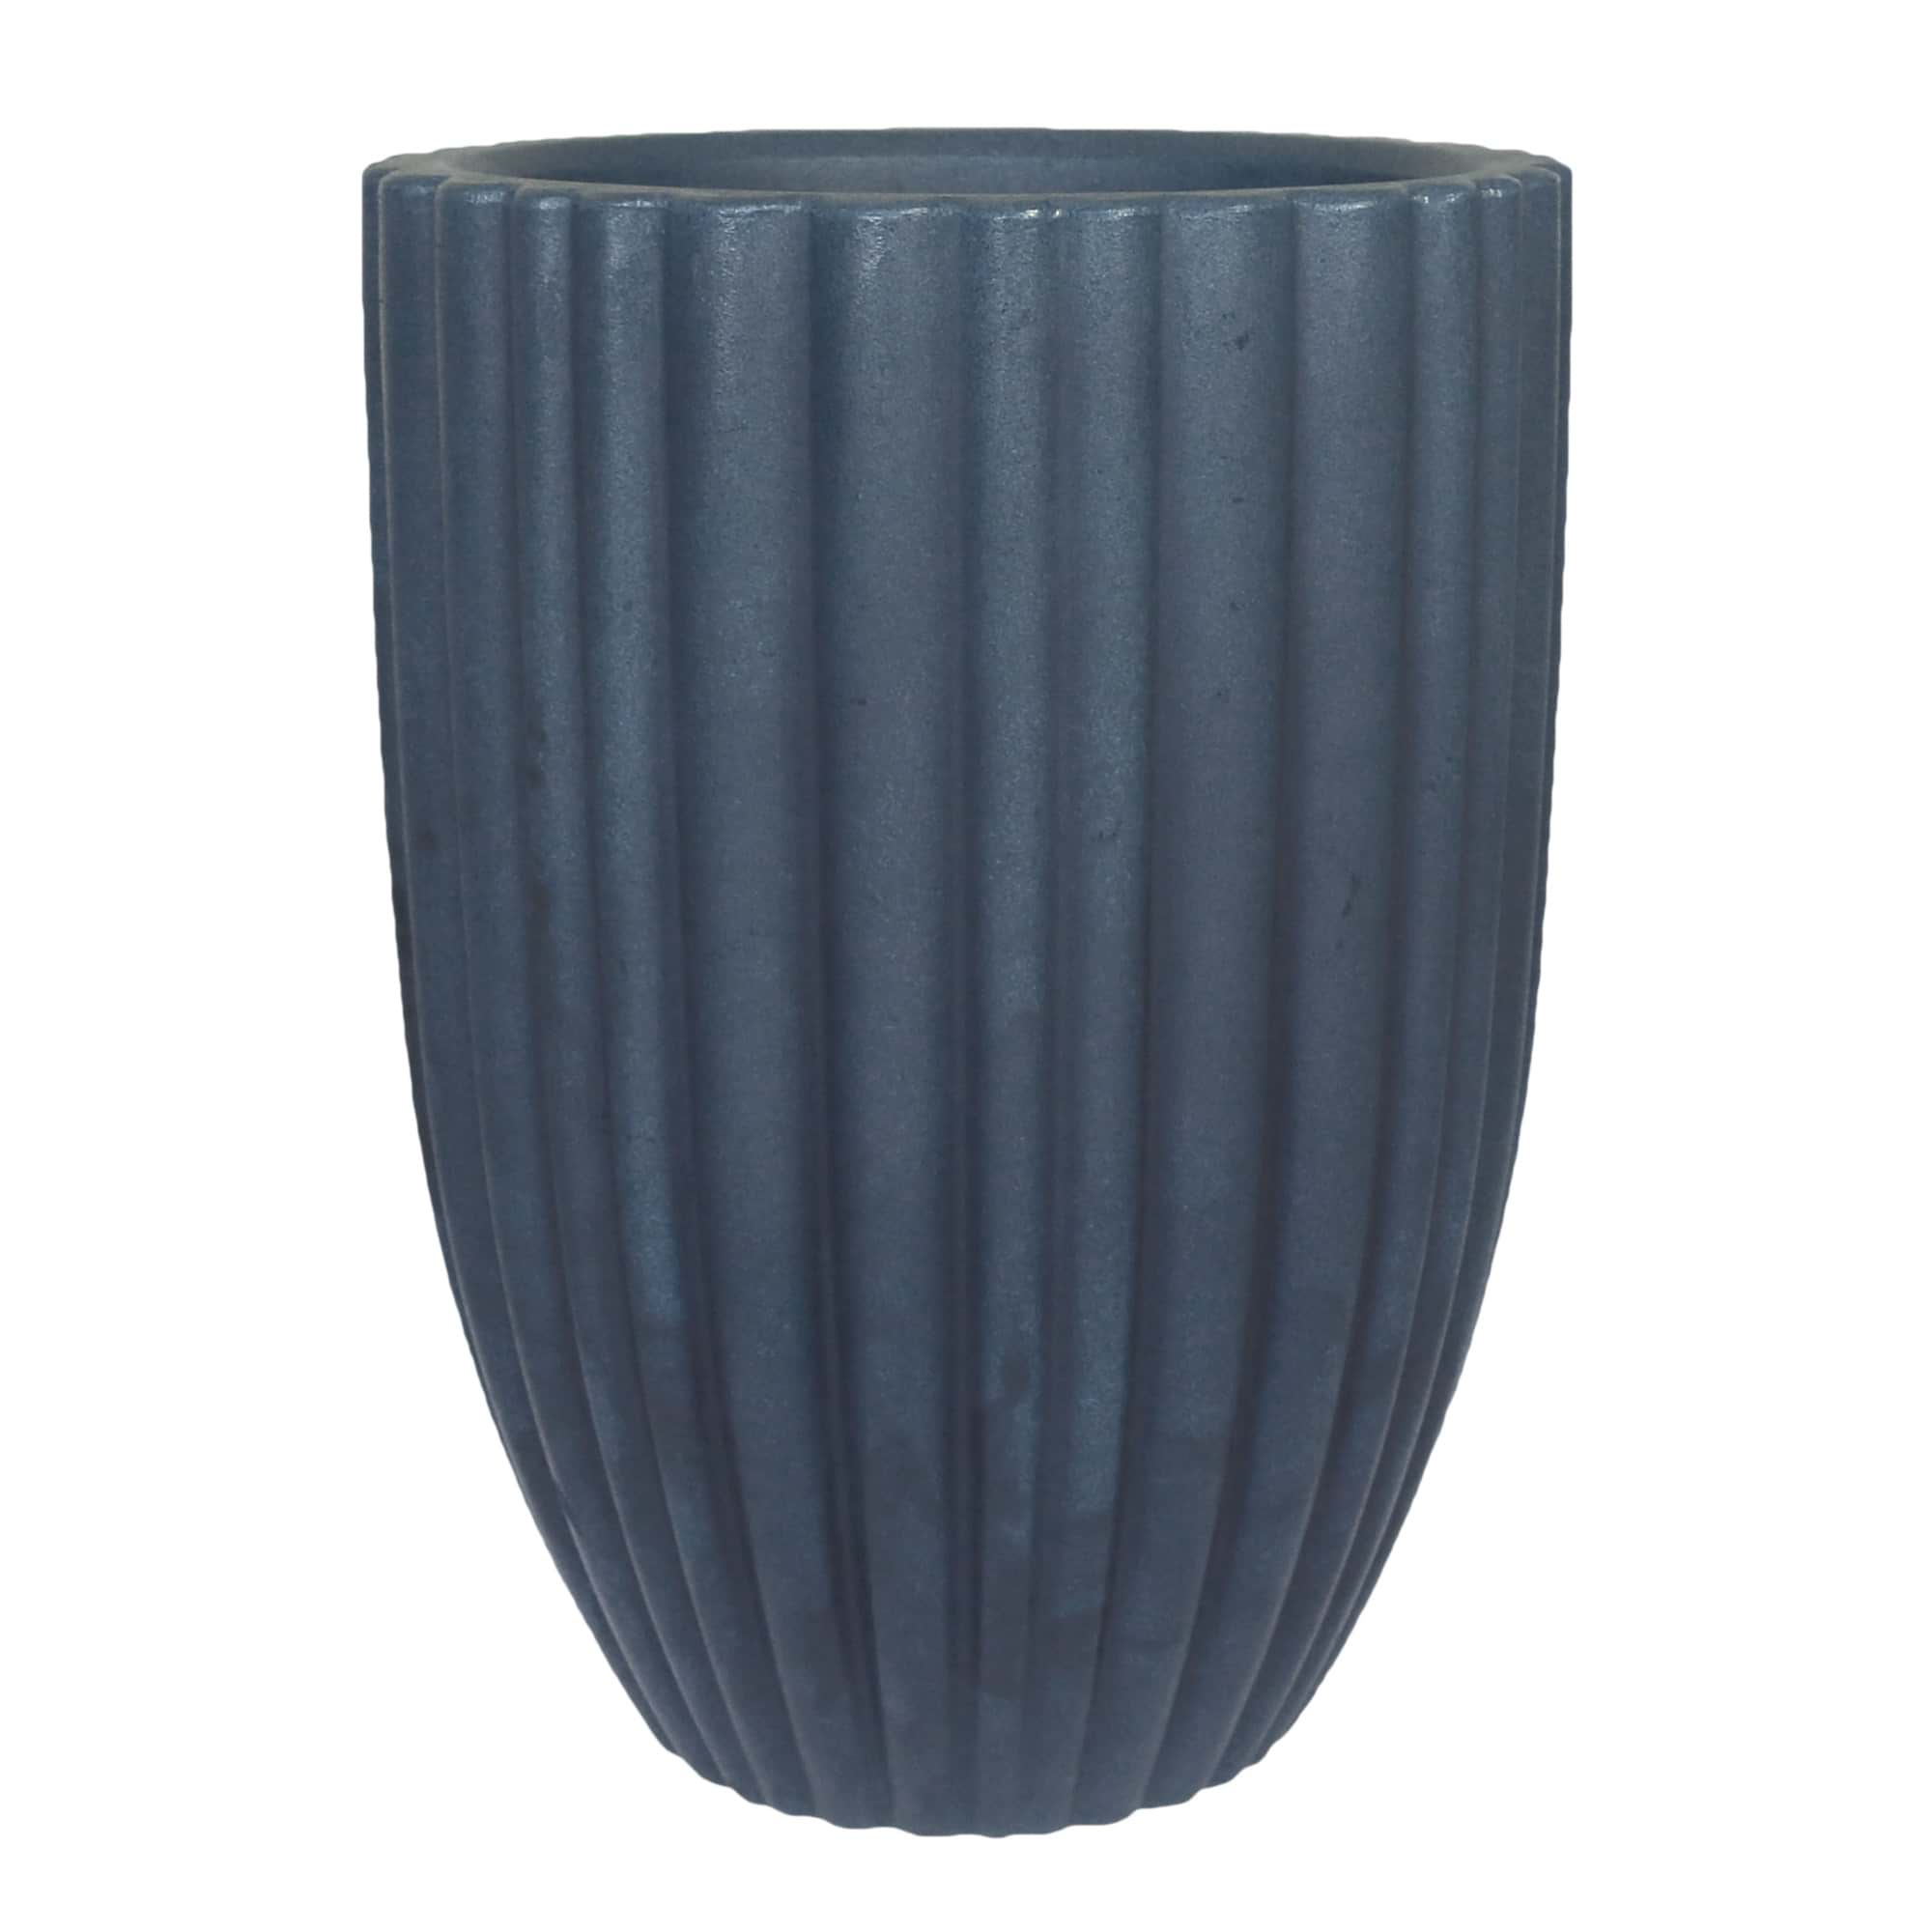 Vaso Cacau 42 x 54 cm Antique Azul